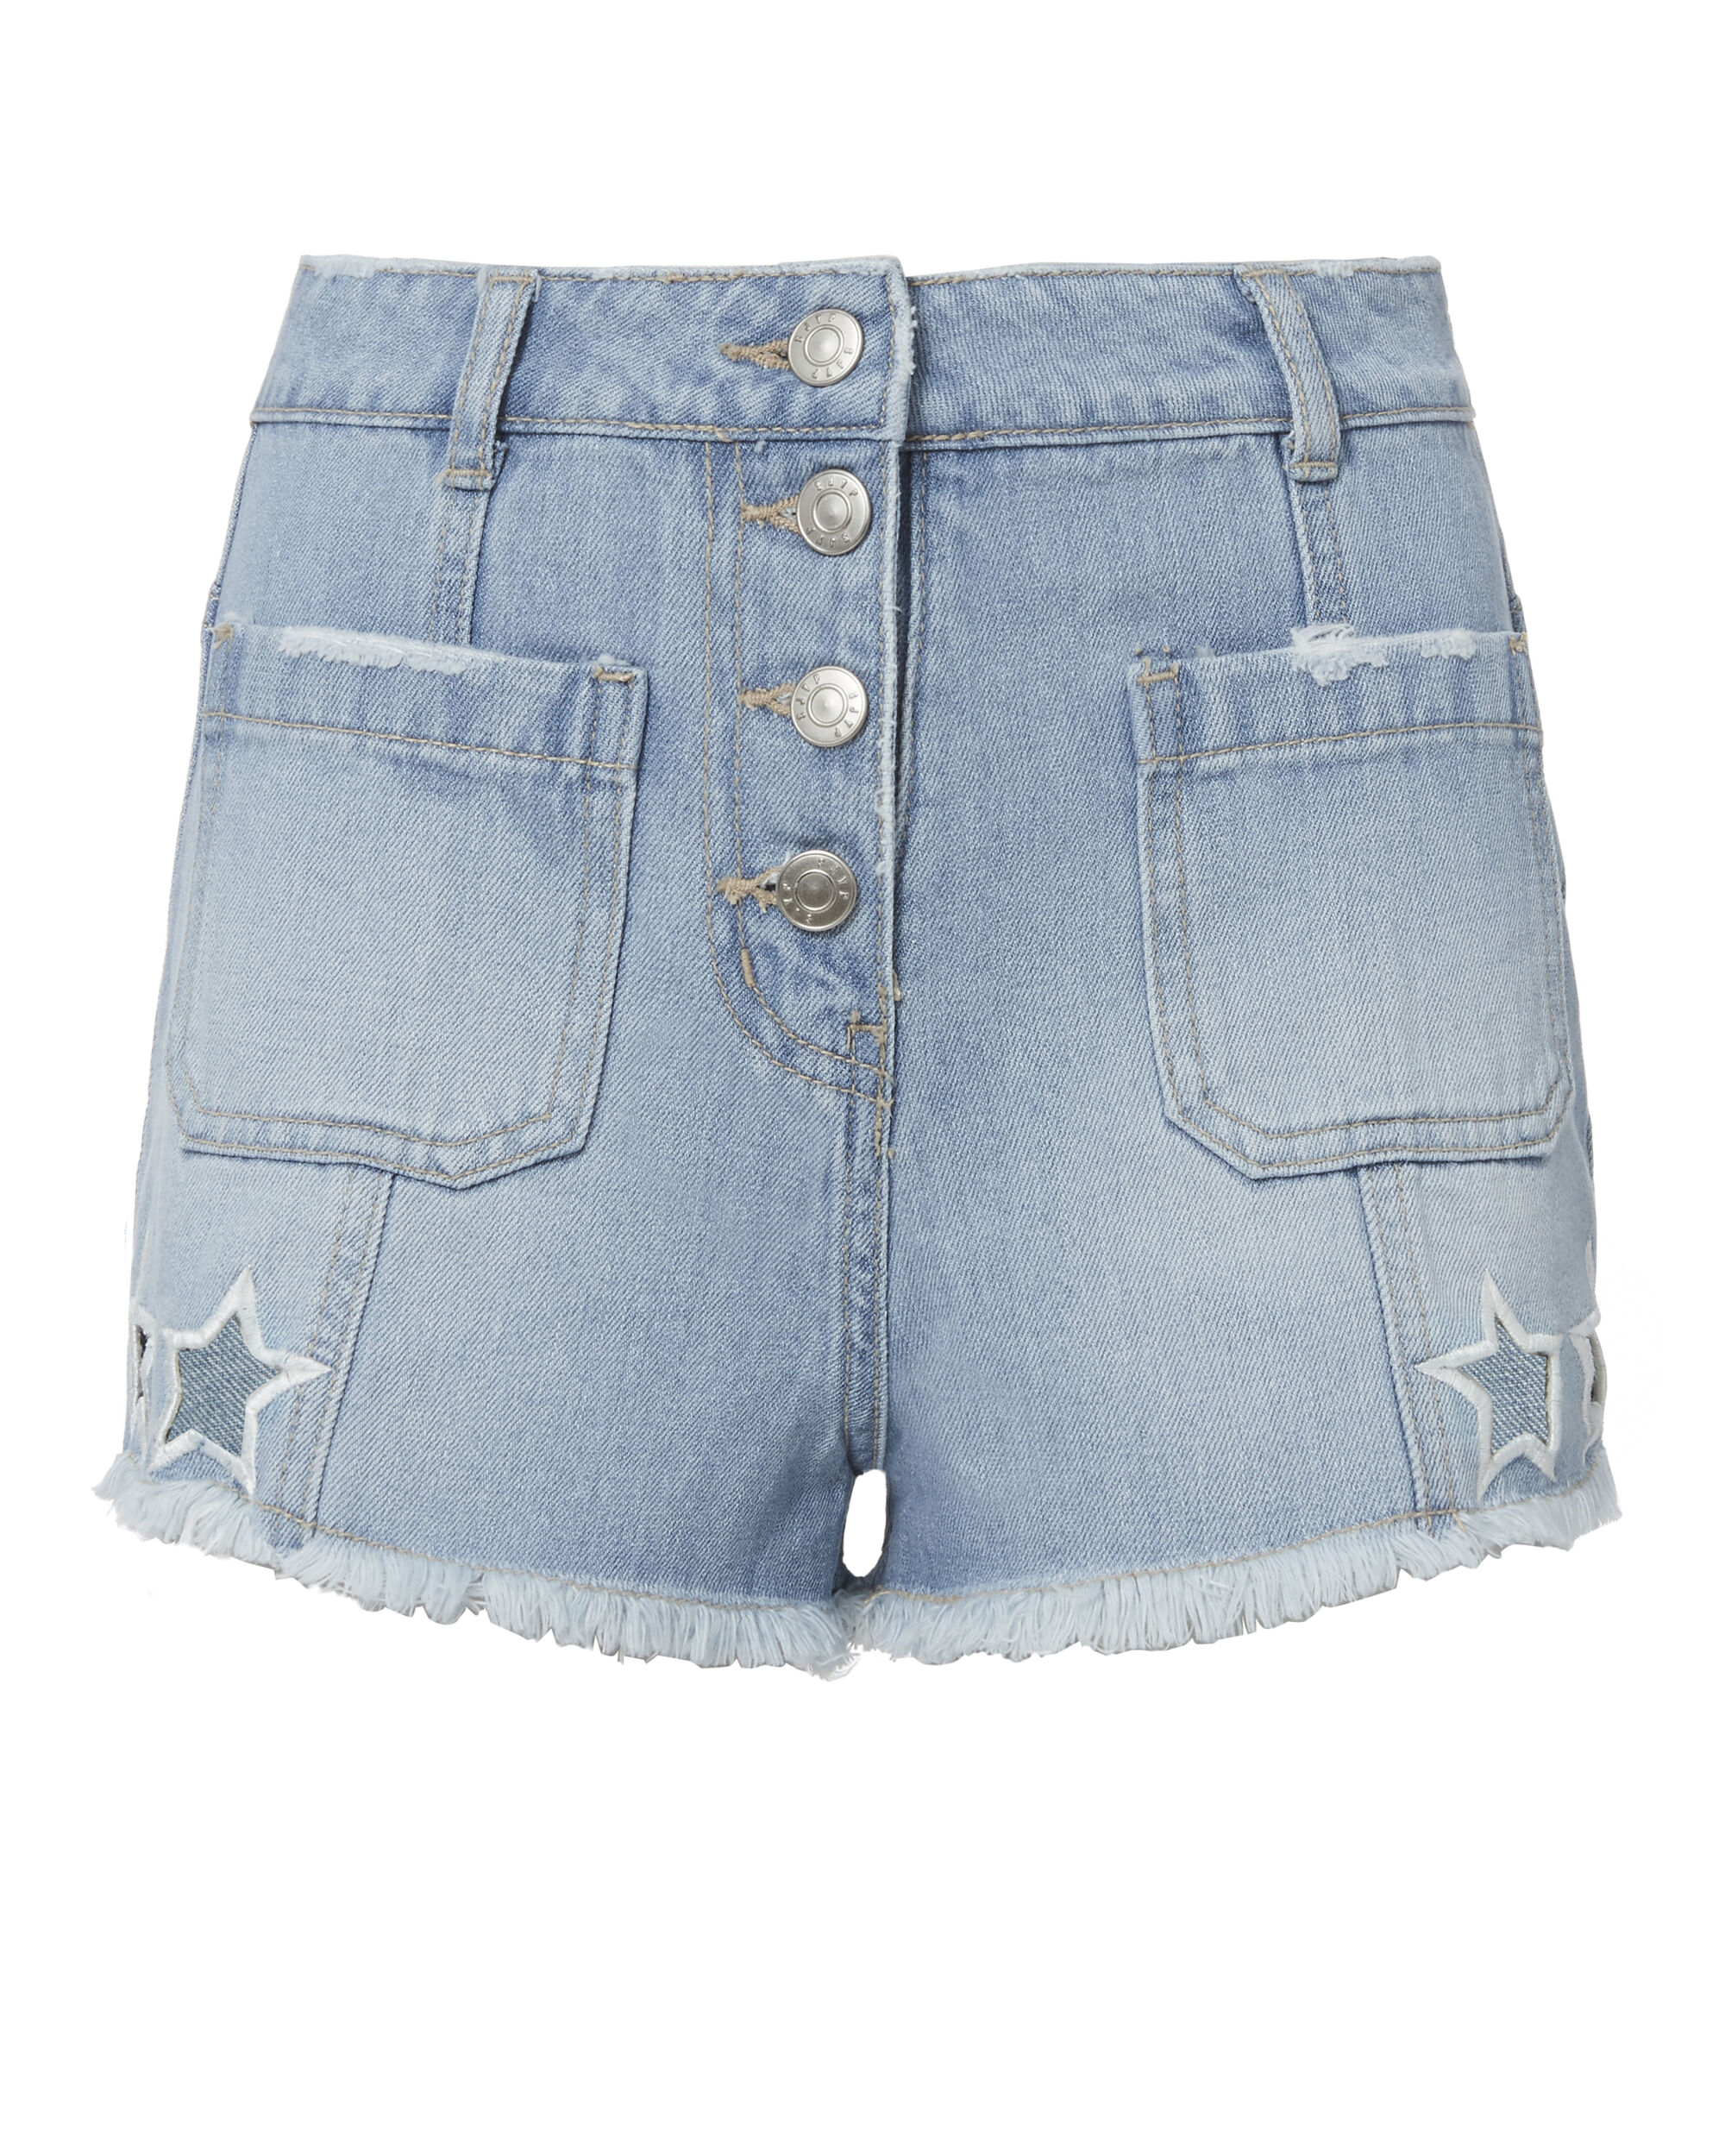 Star Cutout Shorts, BLUE, hi-res